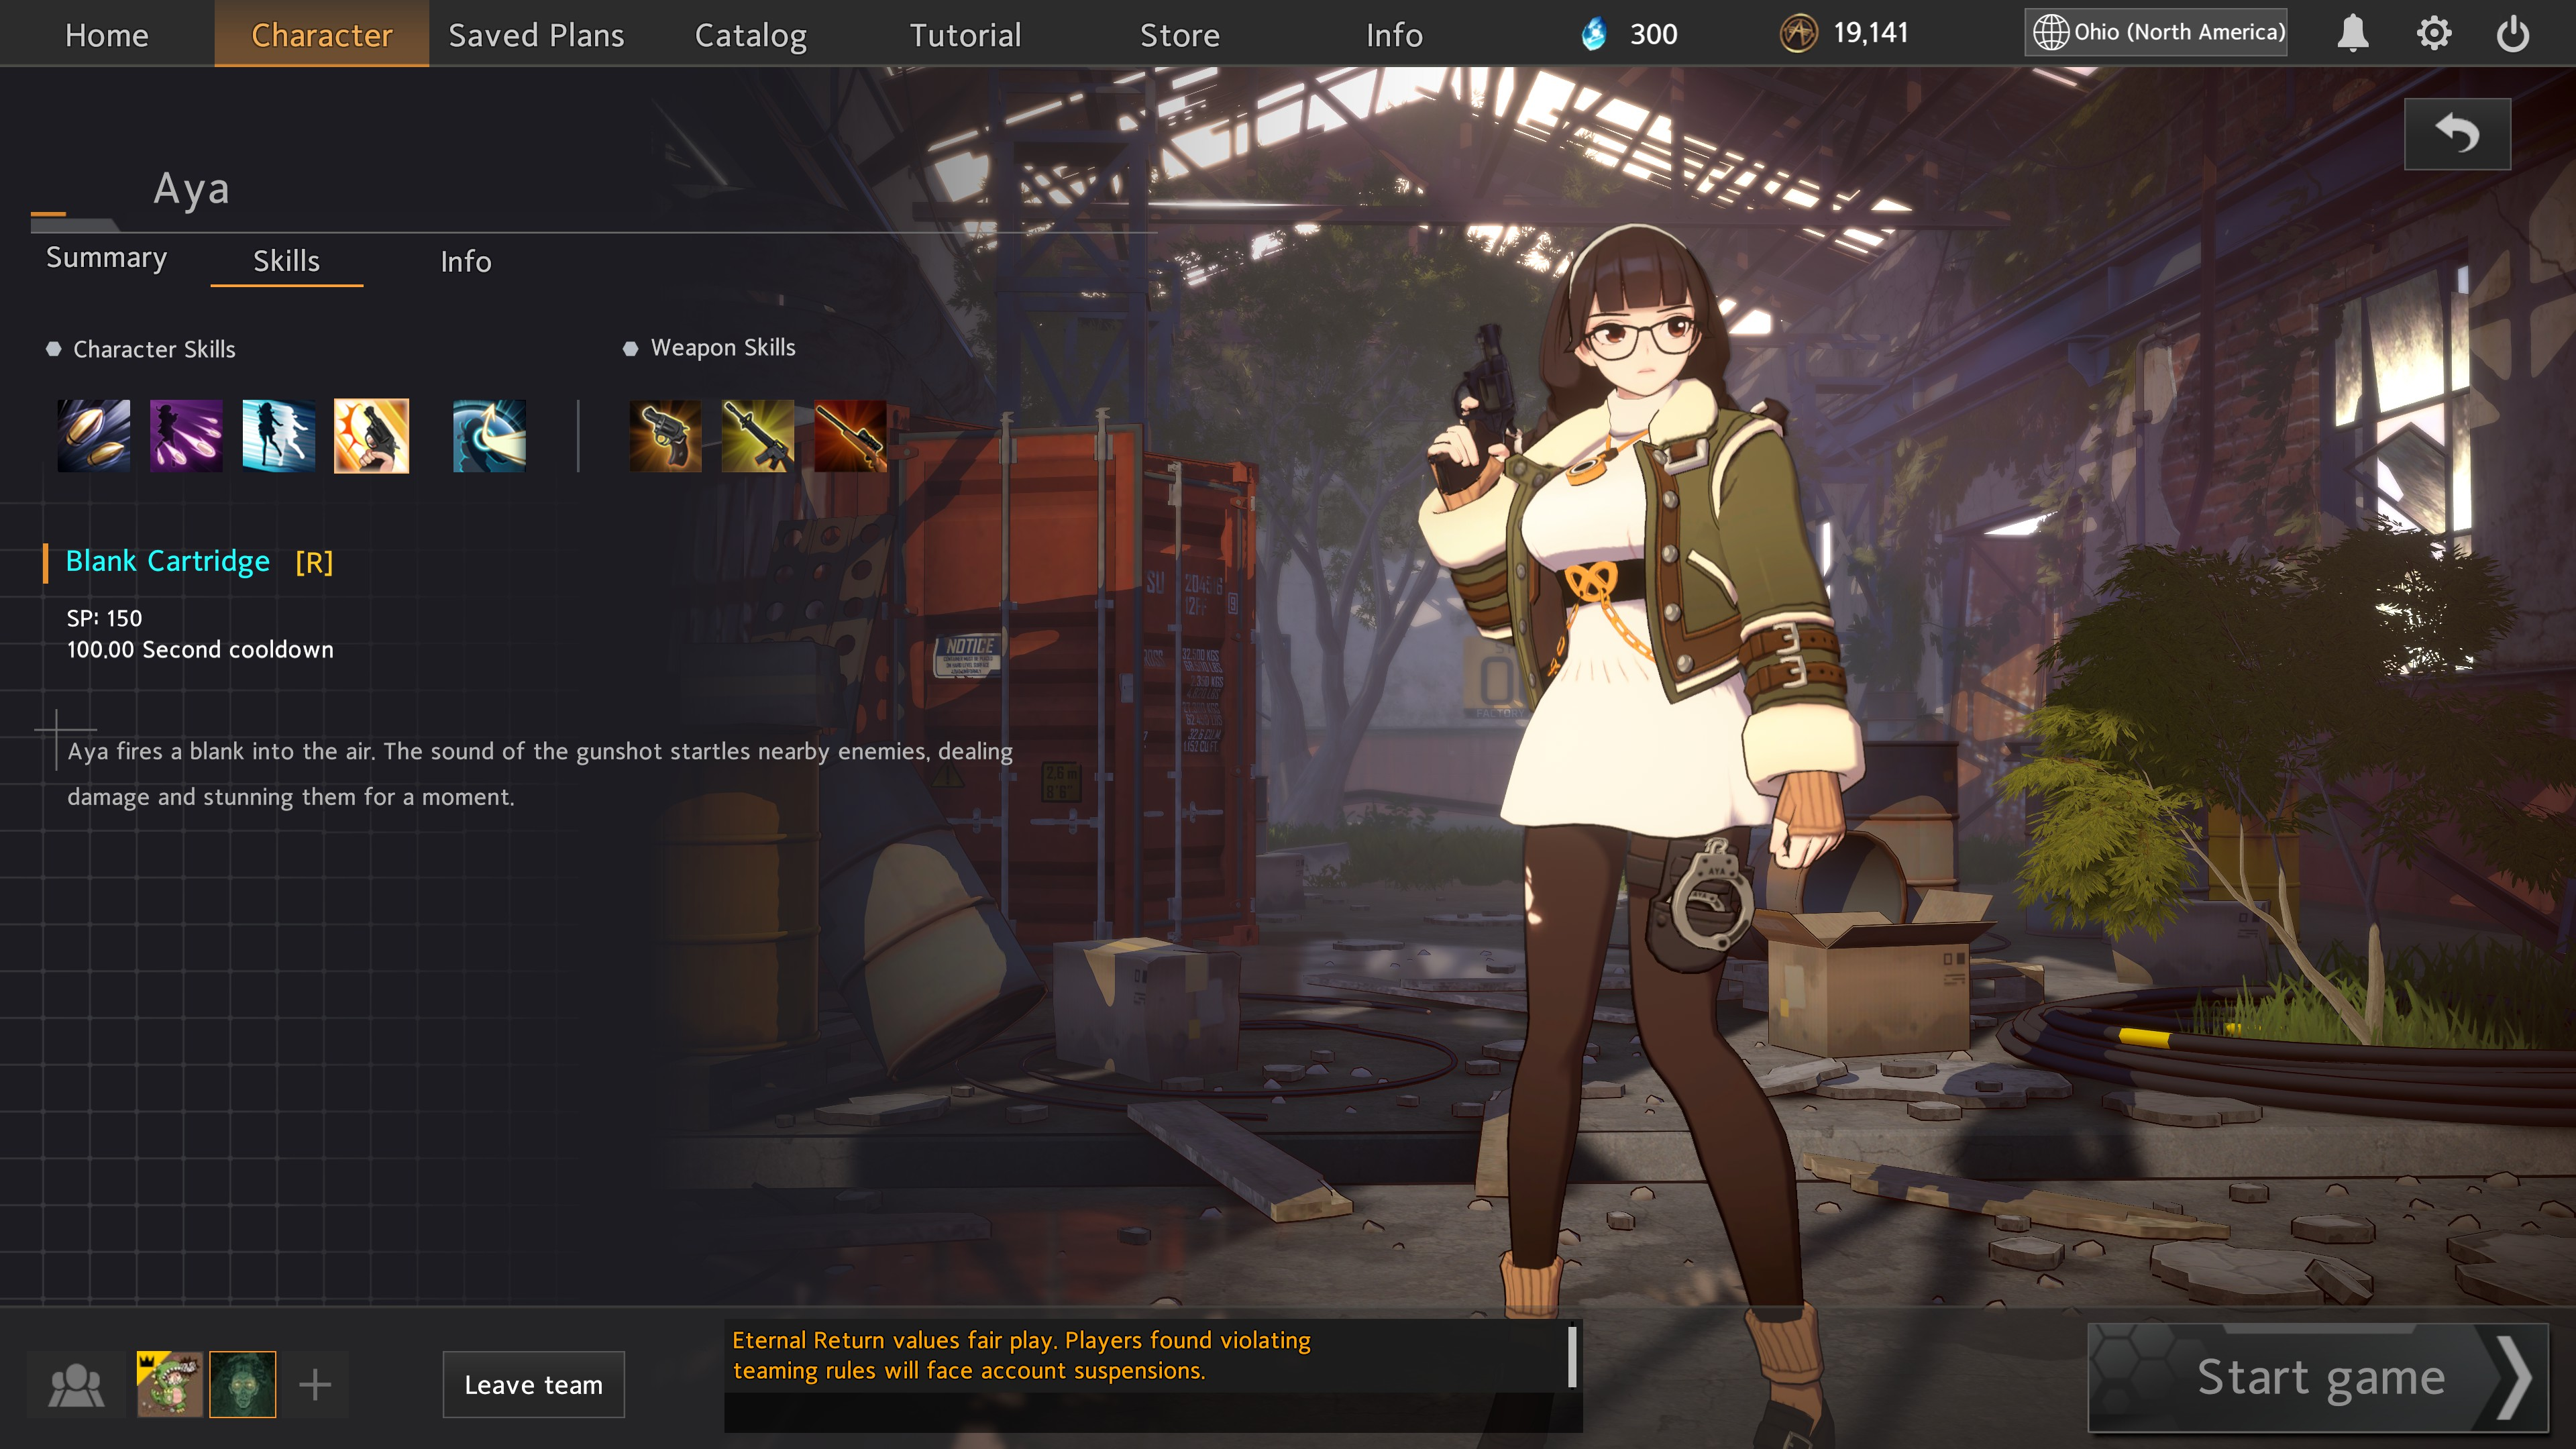 Eternal Return  Black Survival. Preview of Aya, a young police officer shown wielding a pistol. Information on her ultimate ability is displayed, showing it as an AOE stun around her.